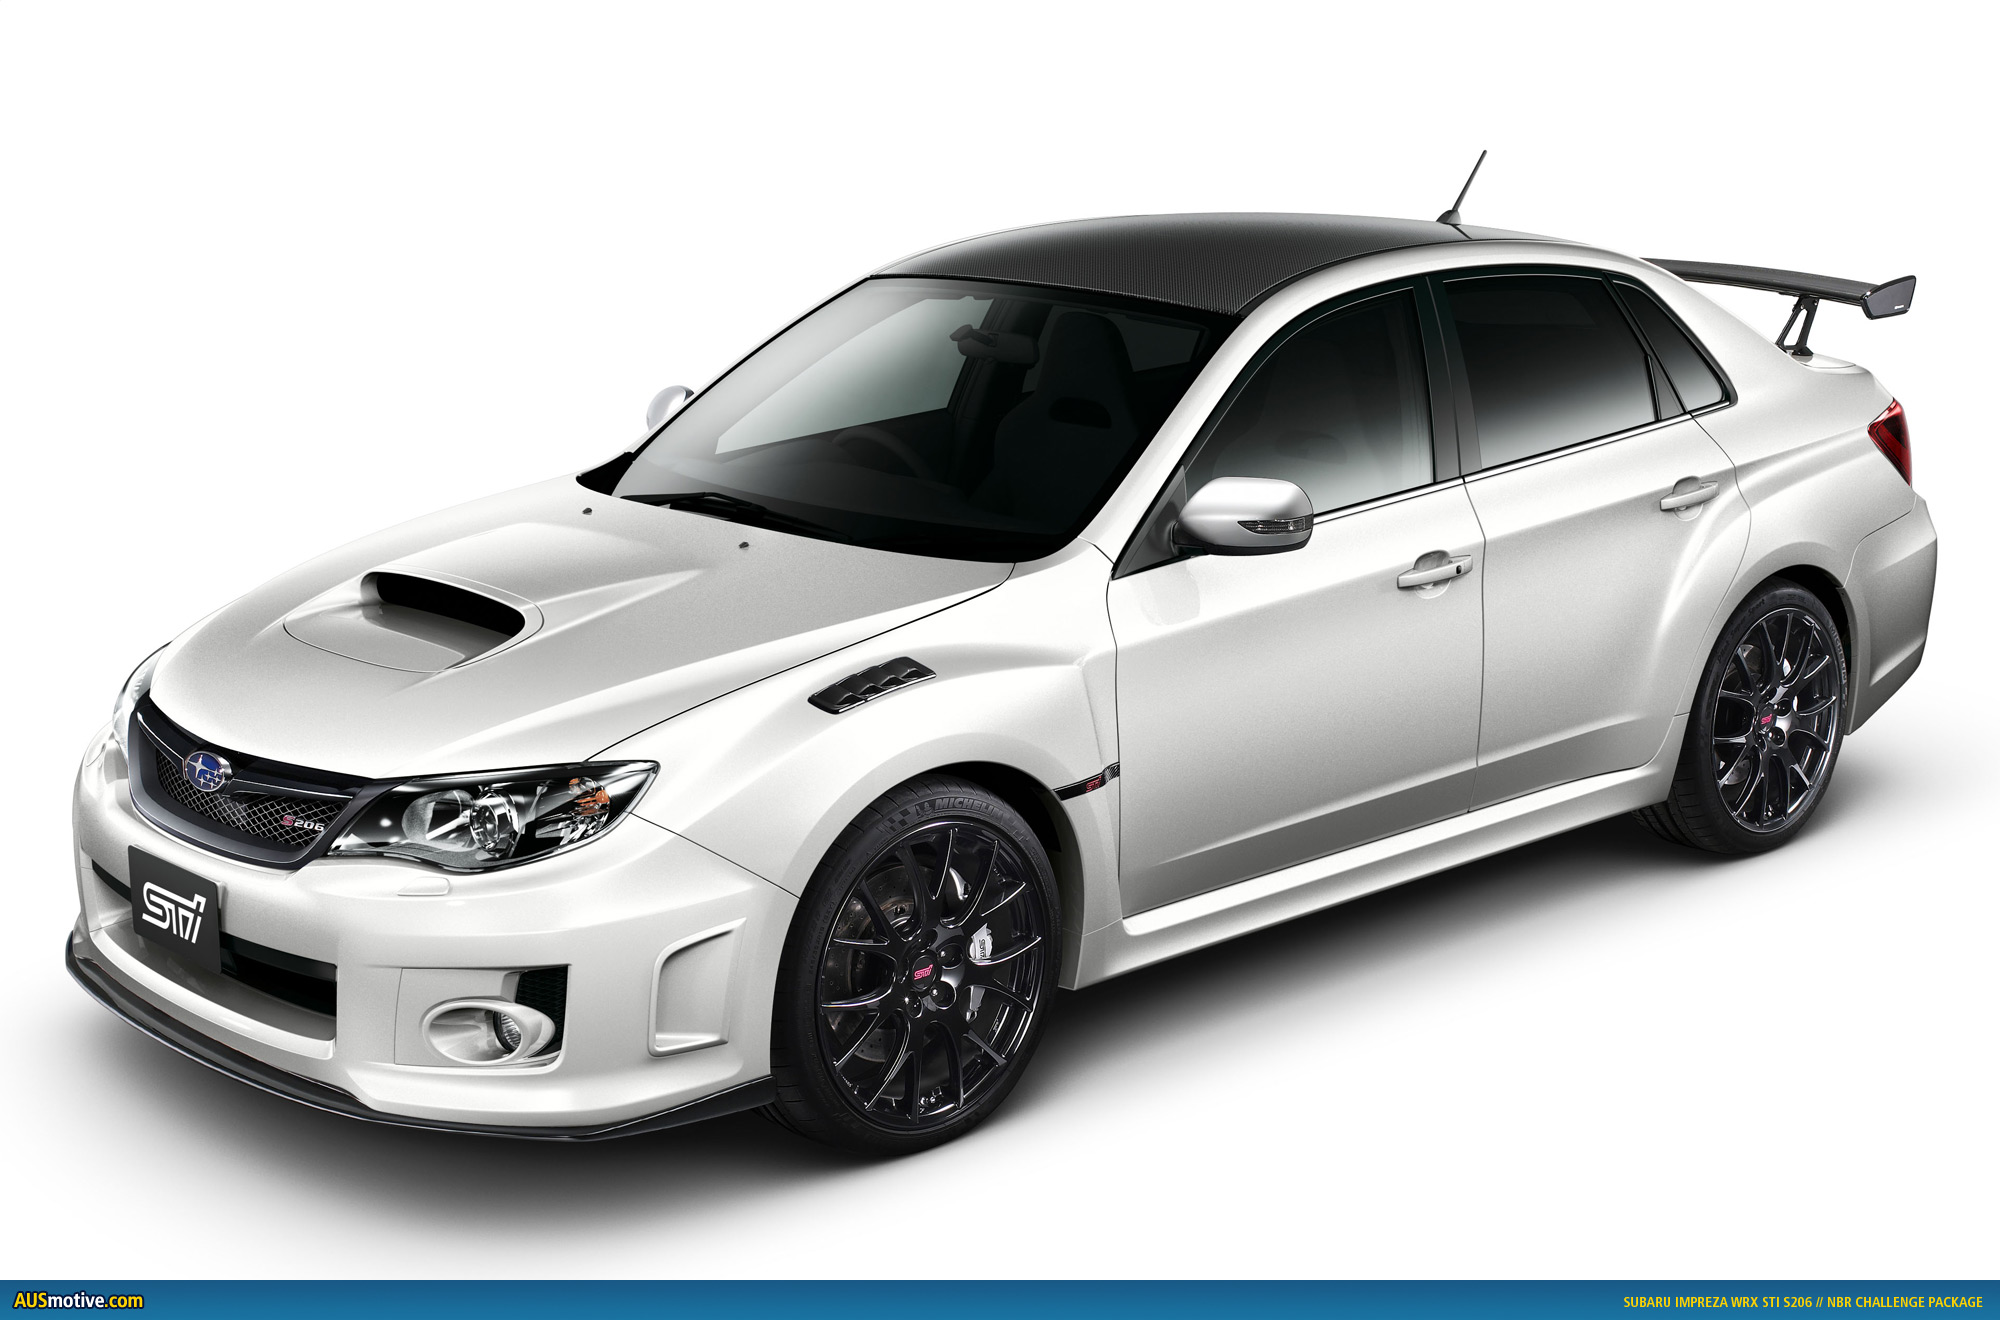 2019 Subaru Impreza WRX STI Special Edition photo - 1